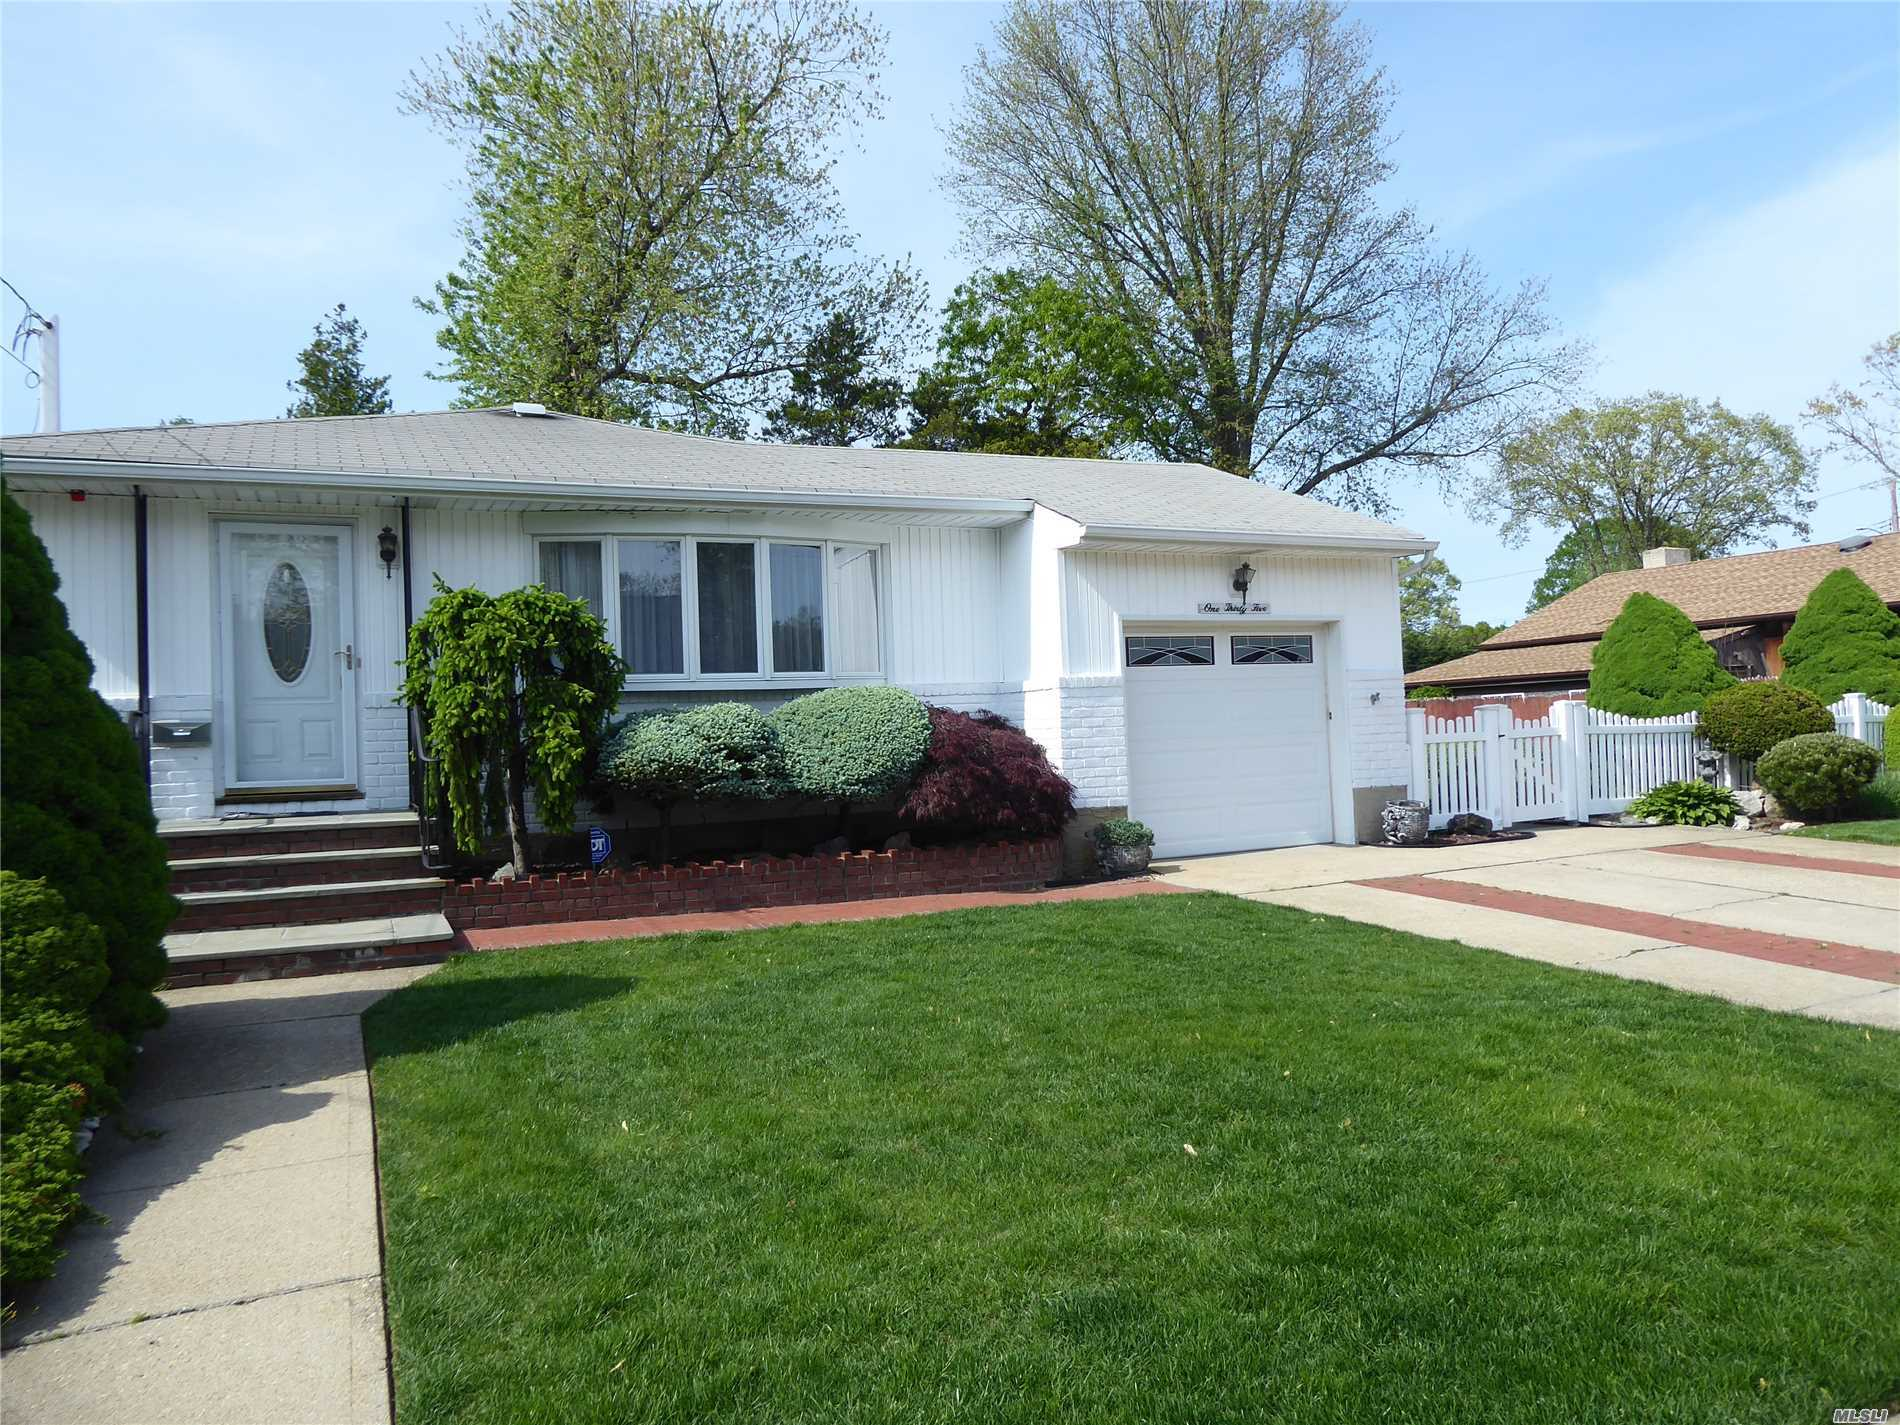 Immaculate 3 Bedroom 1.5 Bath Ranch With Hardwood Floors On Fully Fenced And Perfectly Manicured (Landscaping Included) 86X100 Lot. New Kitchen Has White Shaker Cabinets, Stainless Appliances And Quartz Counters. Plus Garage, Double Wide Driveway And Basement With Wash/Dry On Quiet Street. Farmingdale Sd#22.